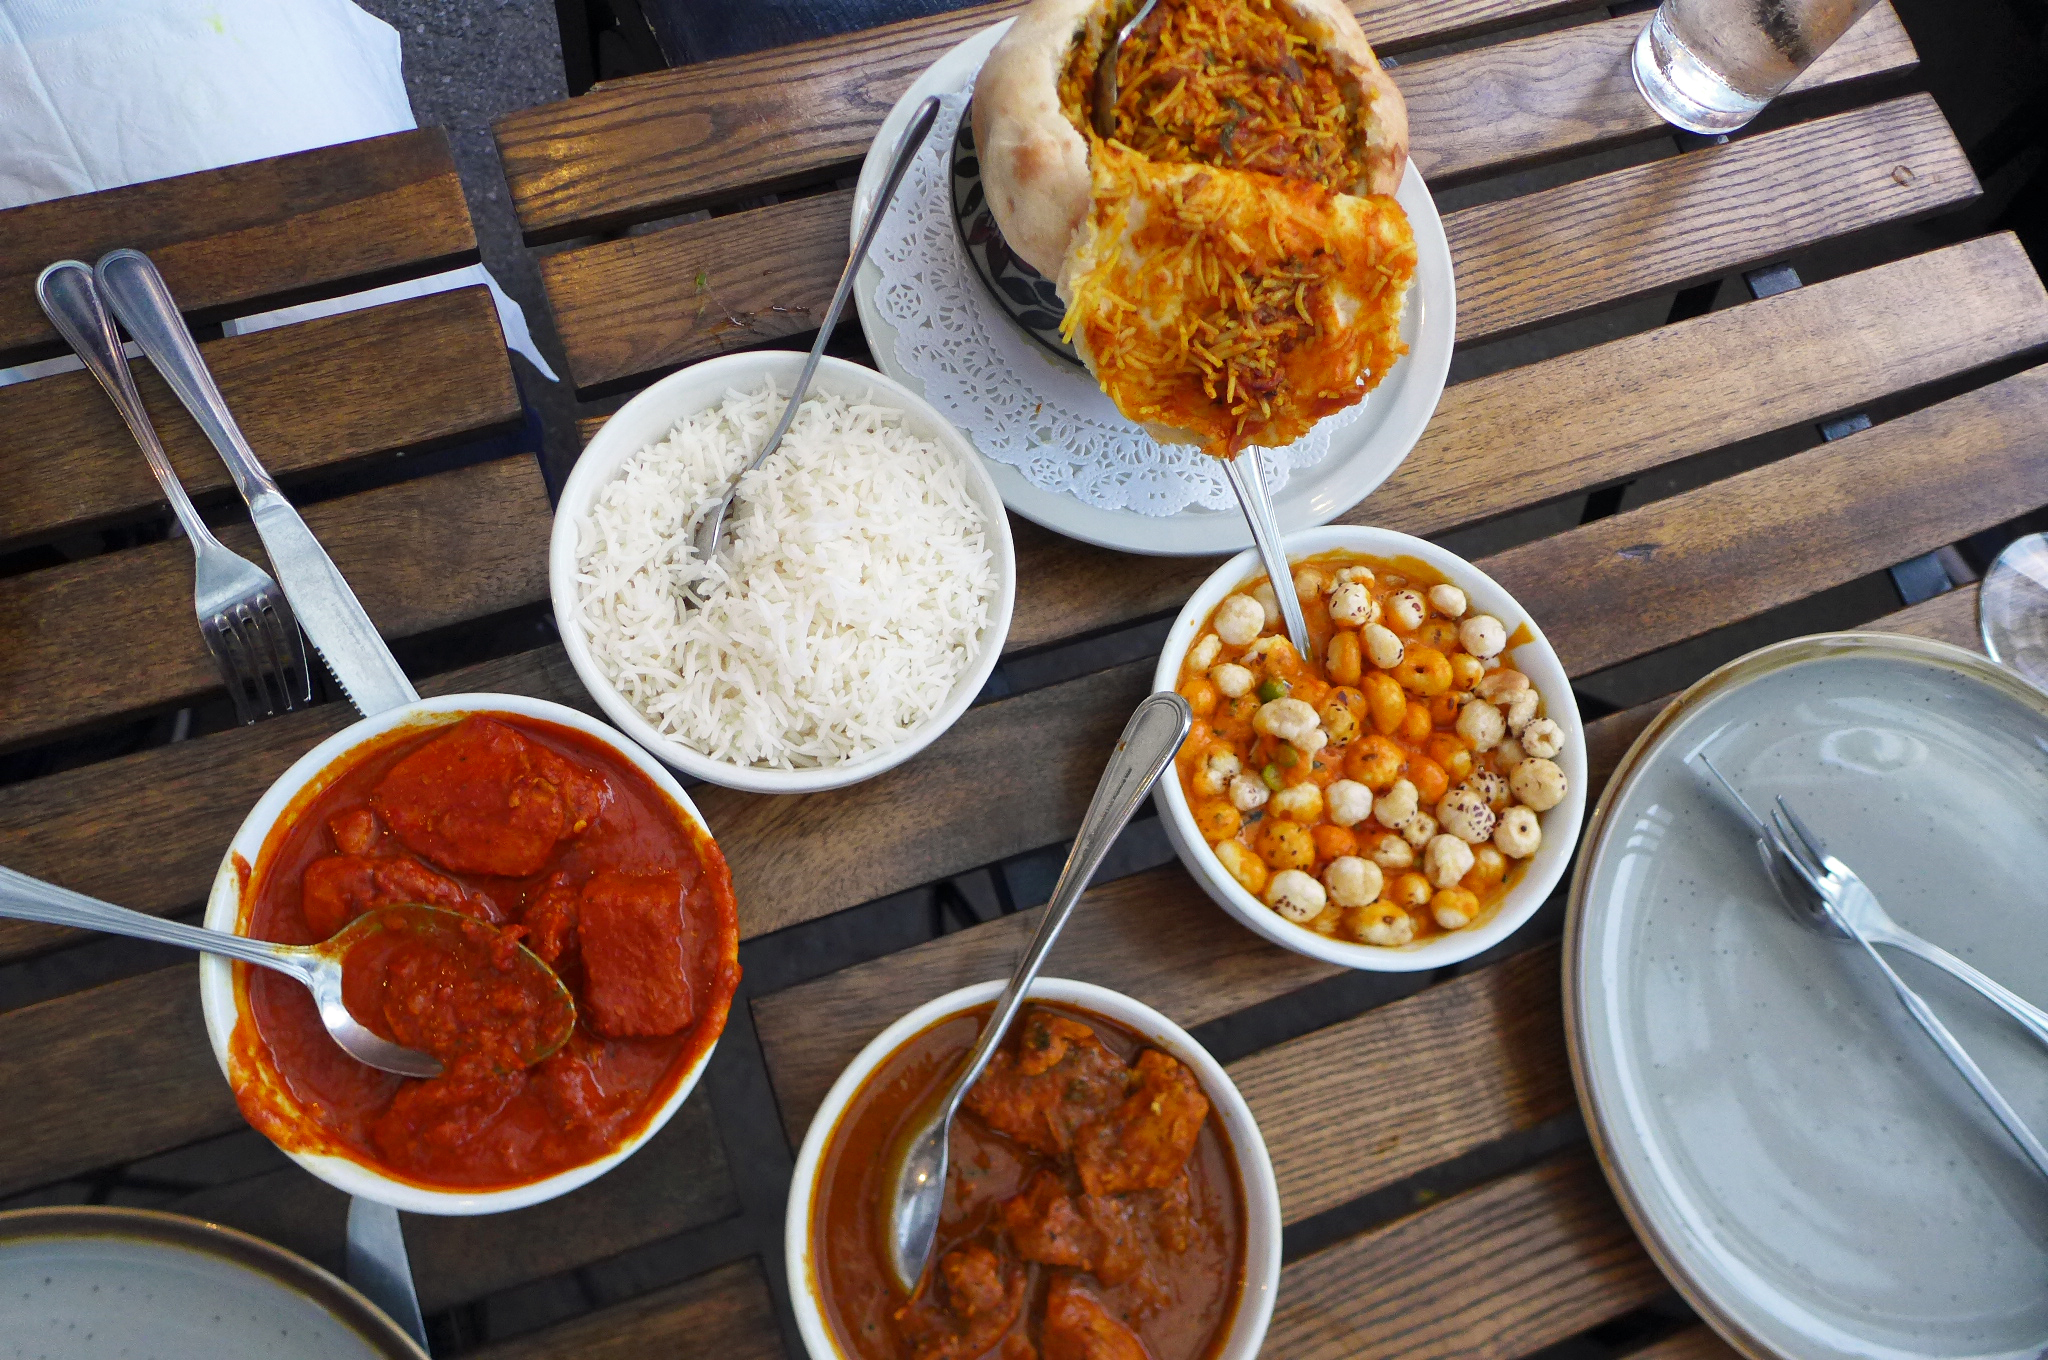 Three bowls of curry, one pie with top pulled back, and rice here and there.